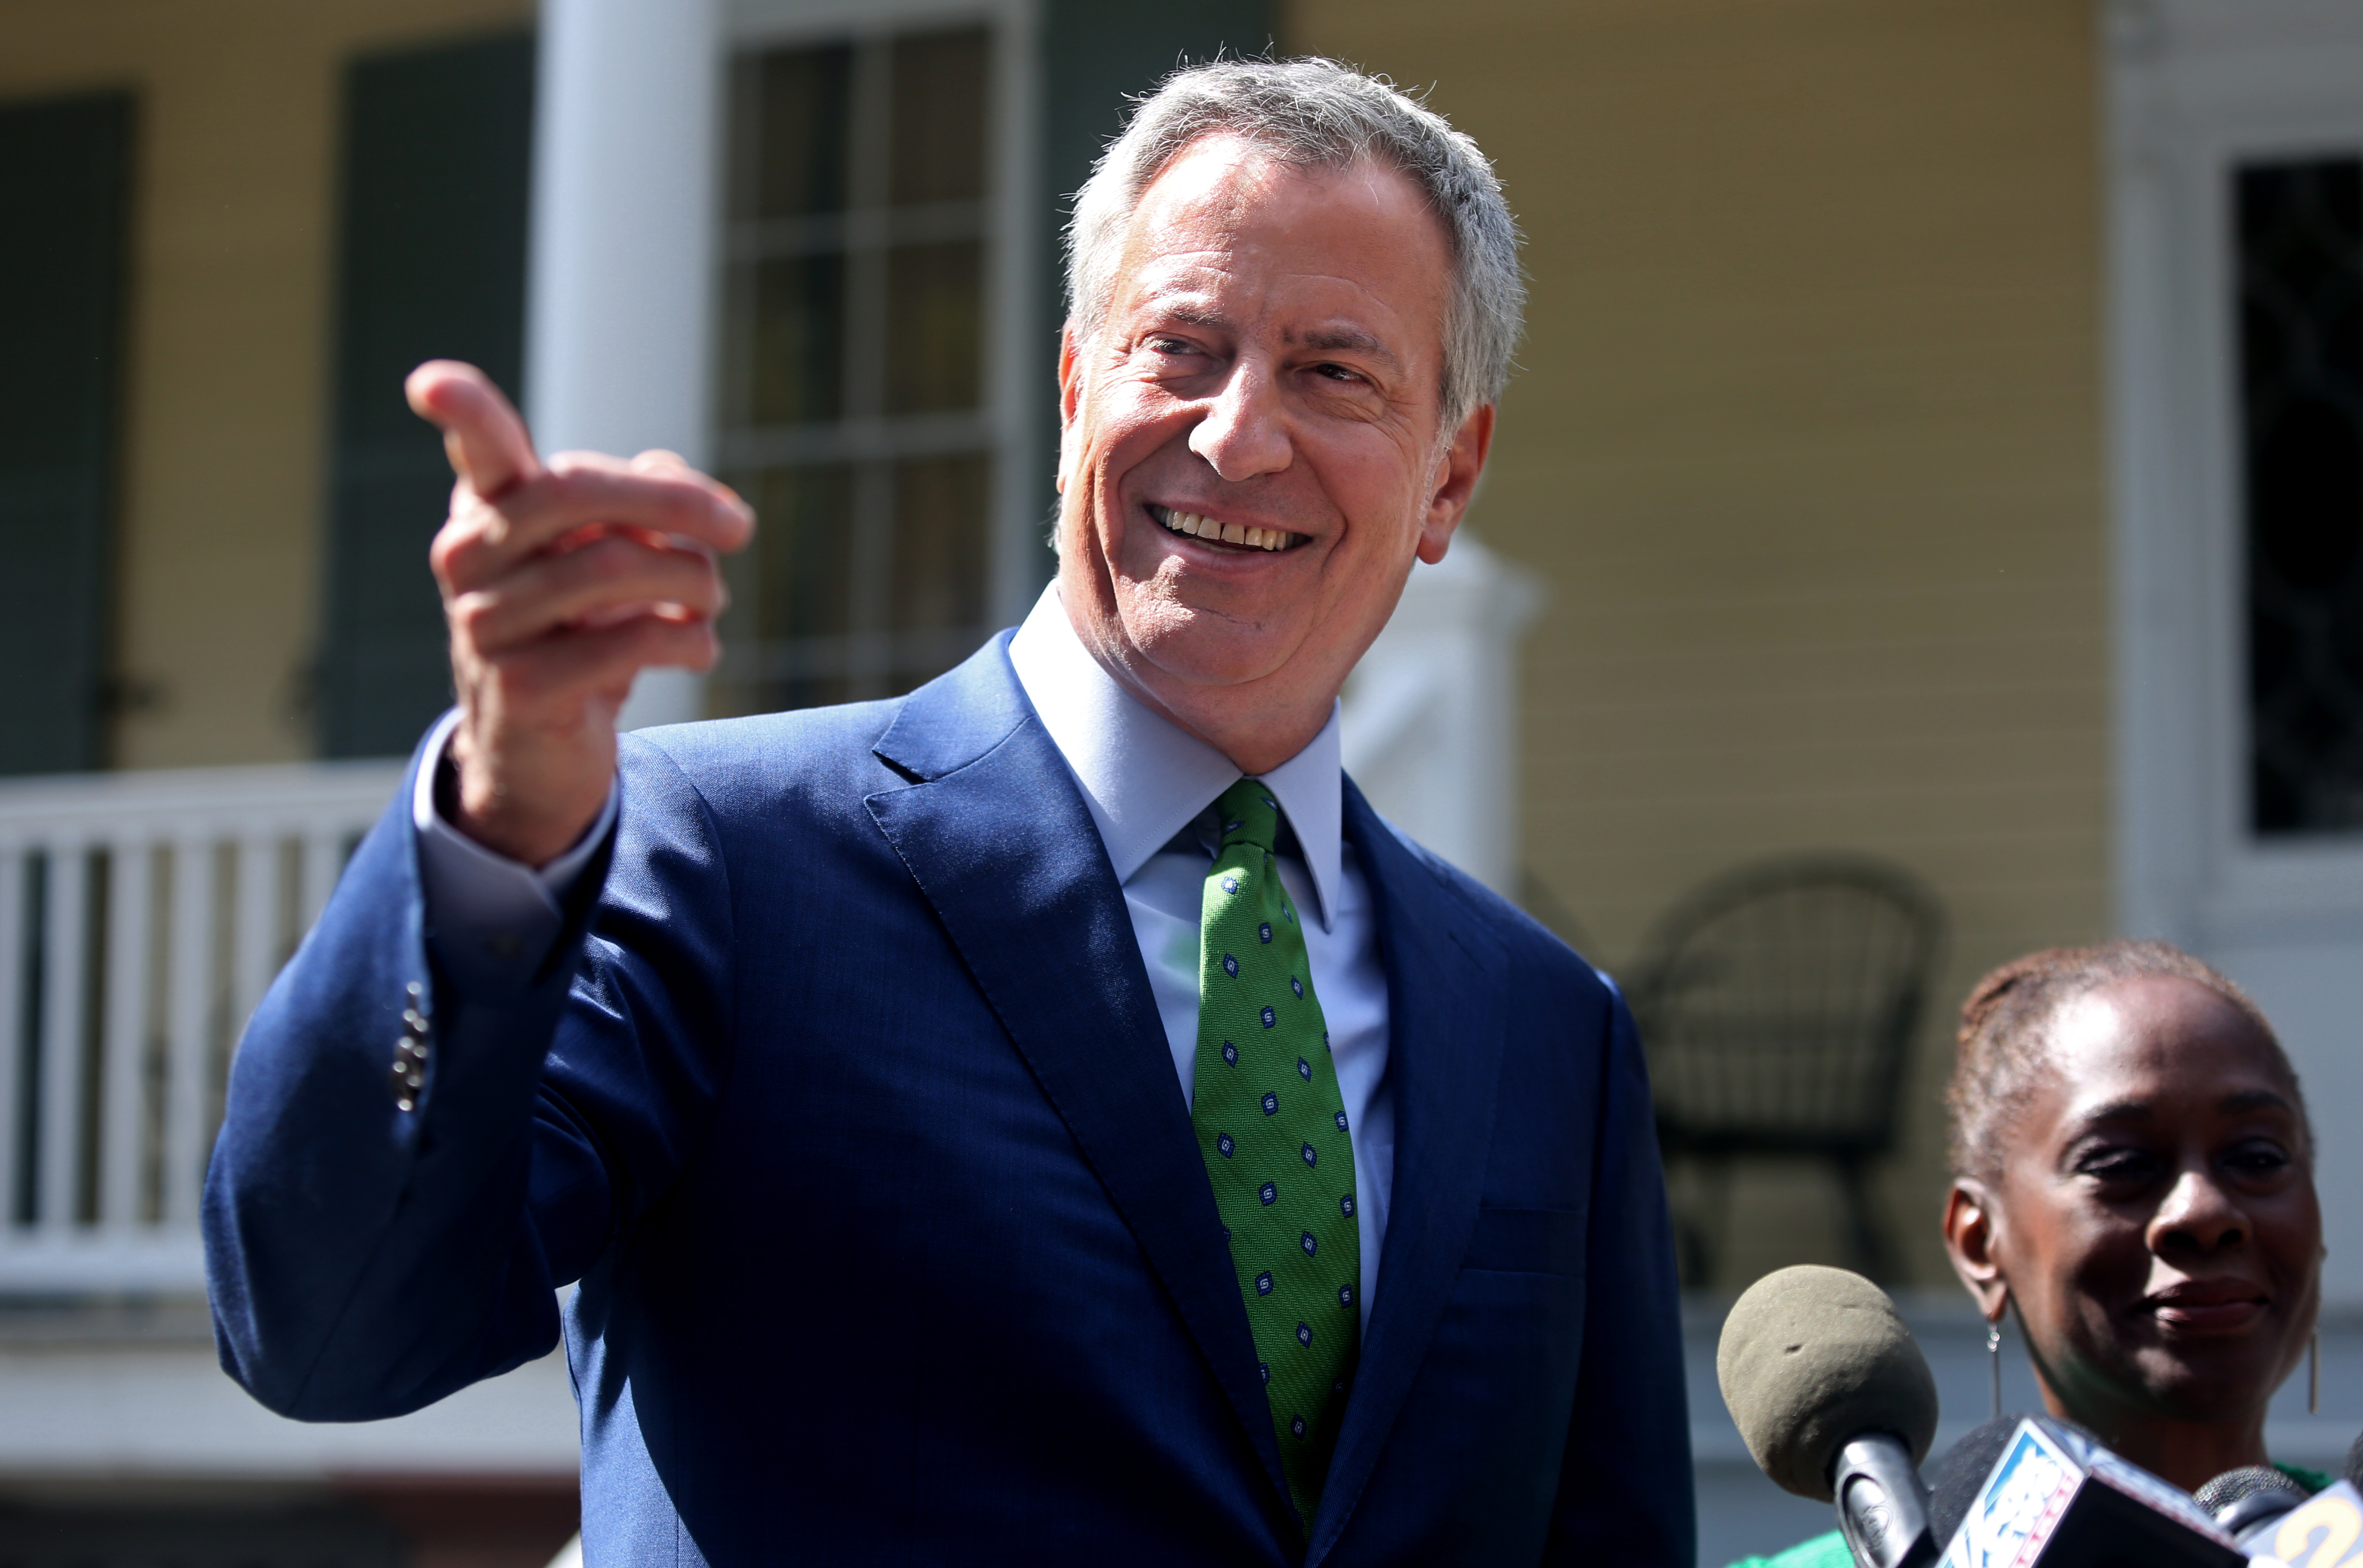 New York City Mayor Bill de Blasio Drops Out Of 2020 Presidential Race